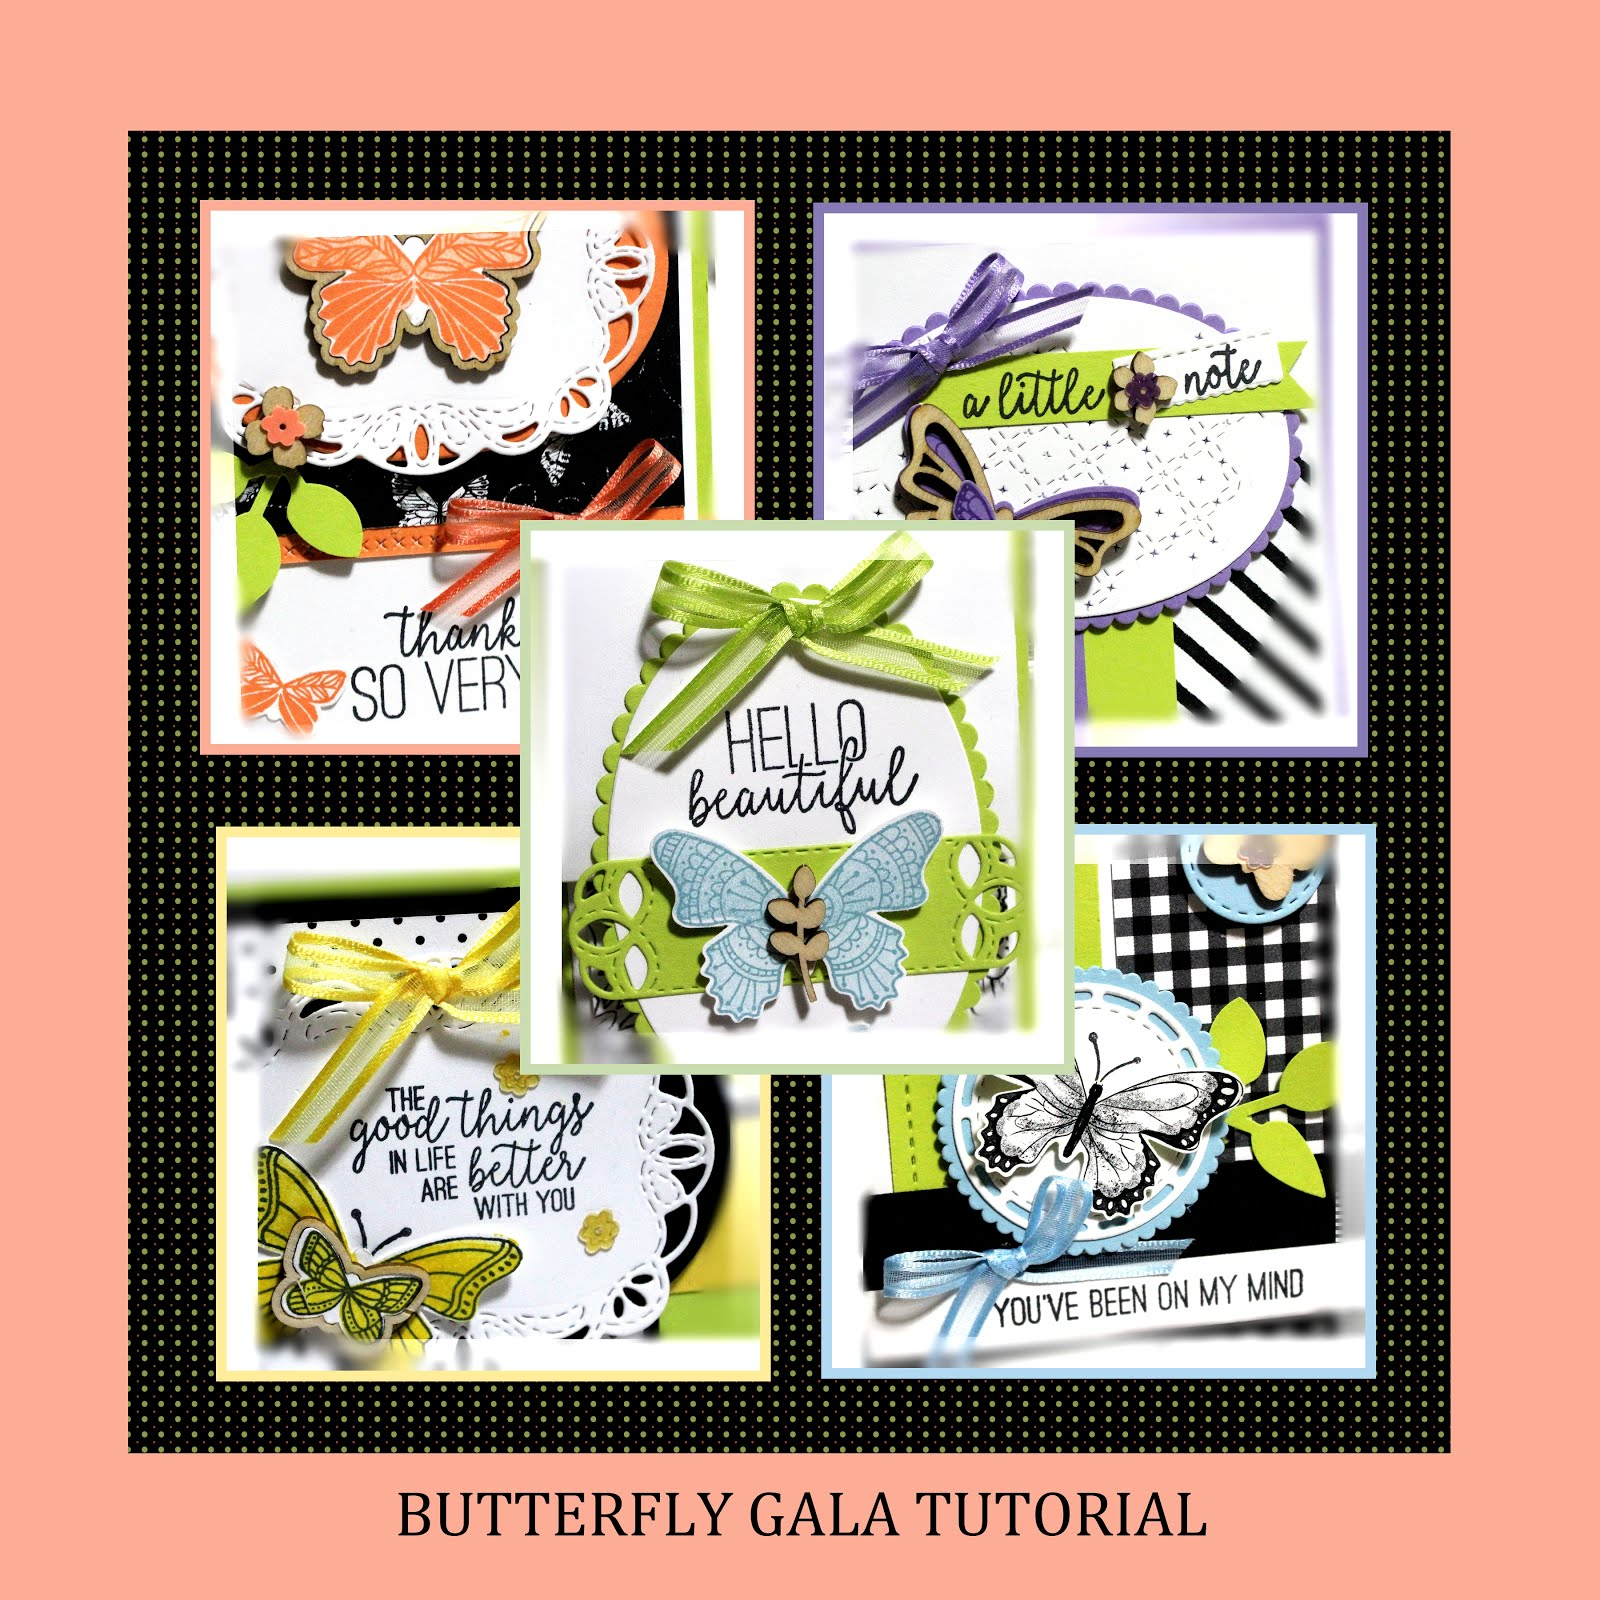 February 2019 Butterfly Gala Tutorial